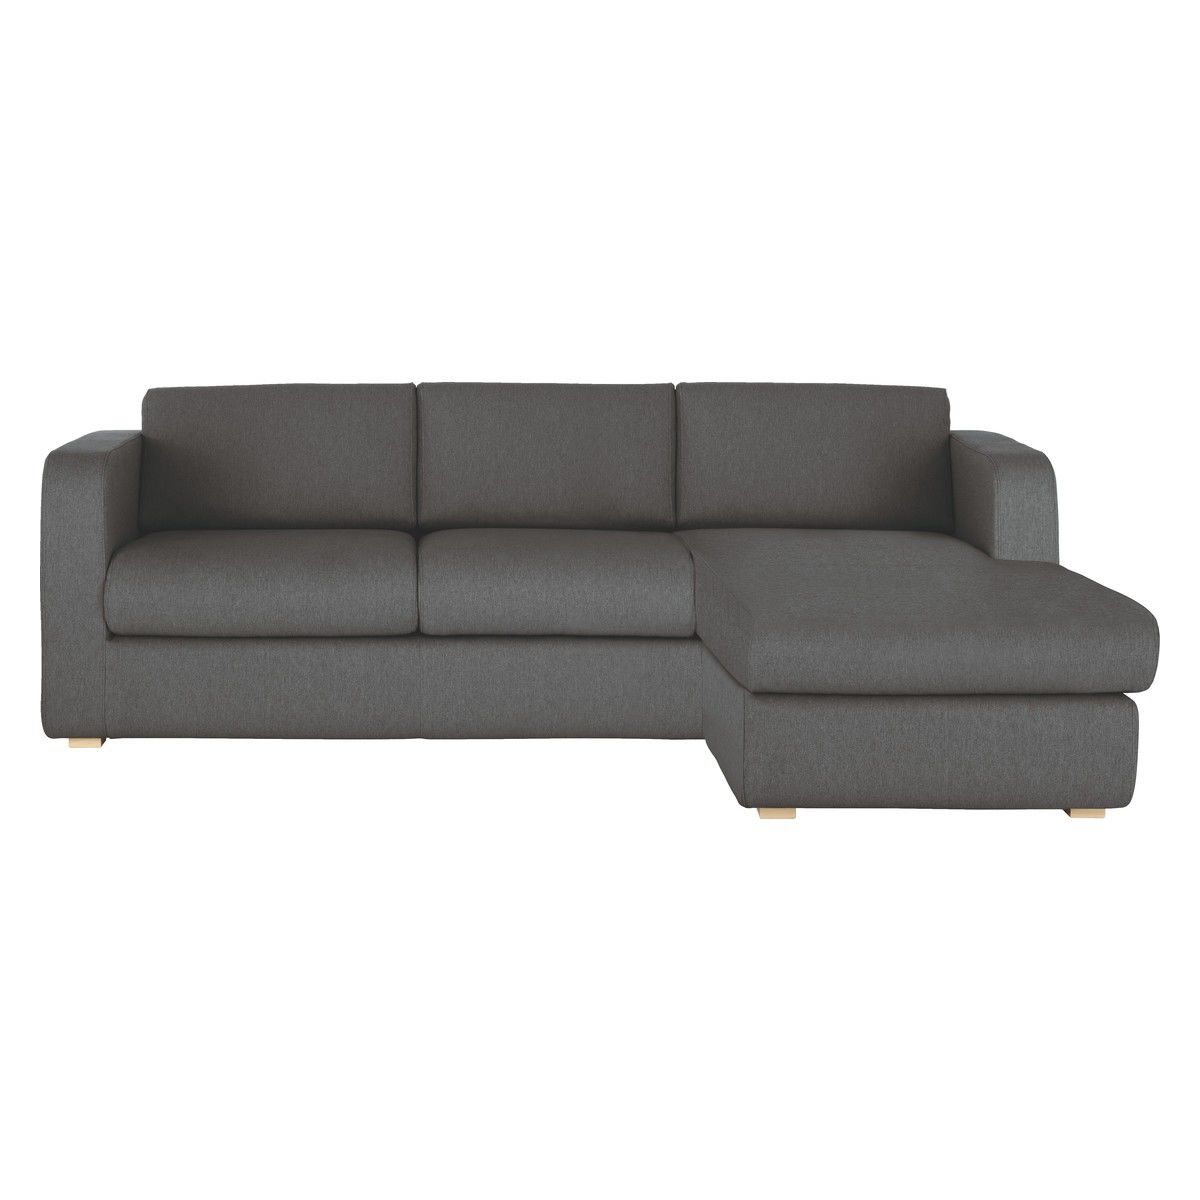 superb ikea small sofa picture-Luxury Ikea Small sofa Gallery